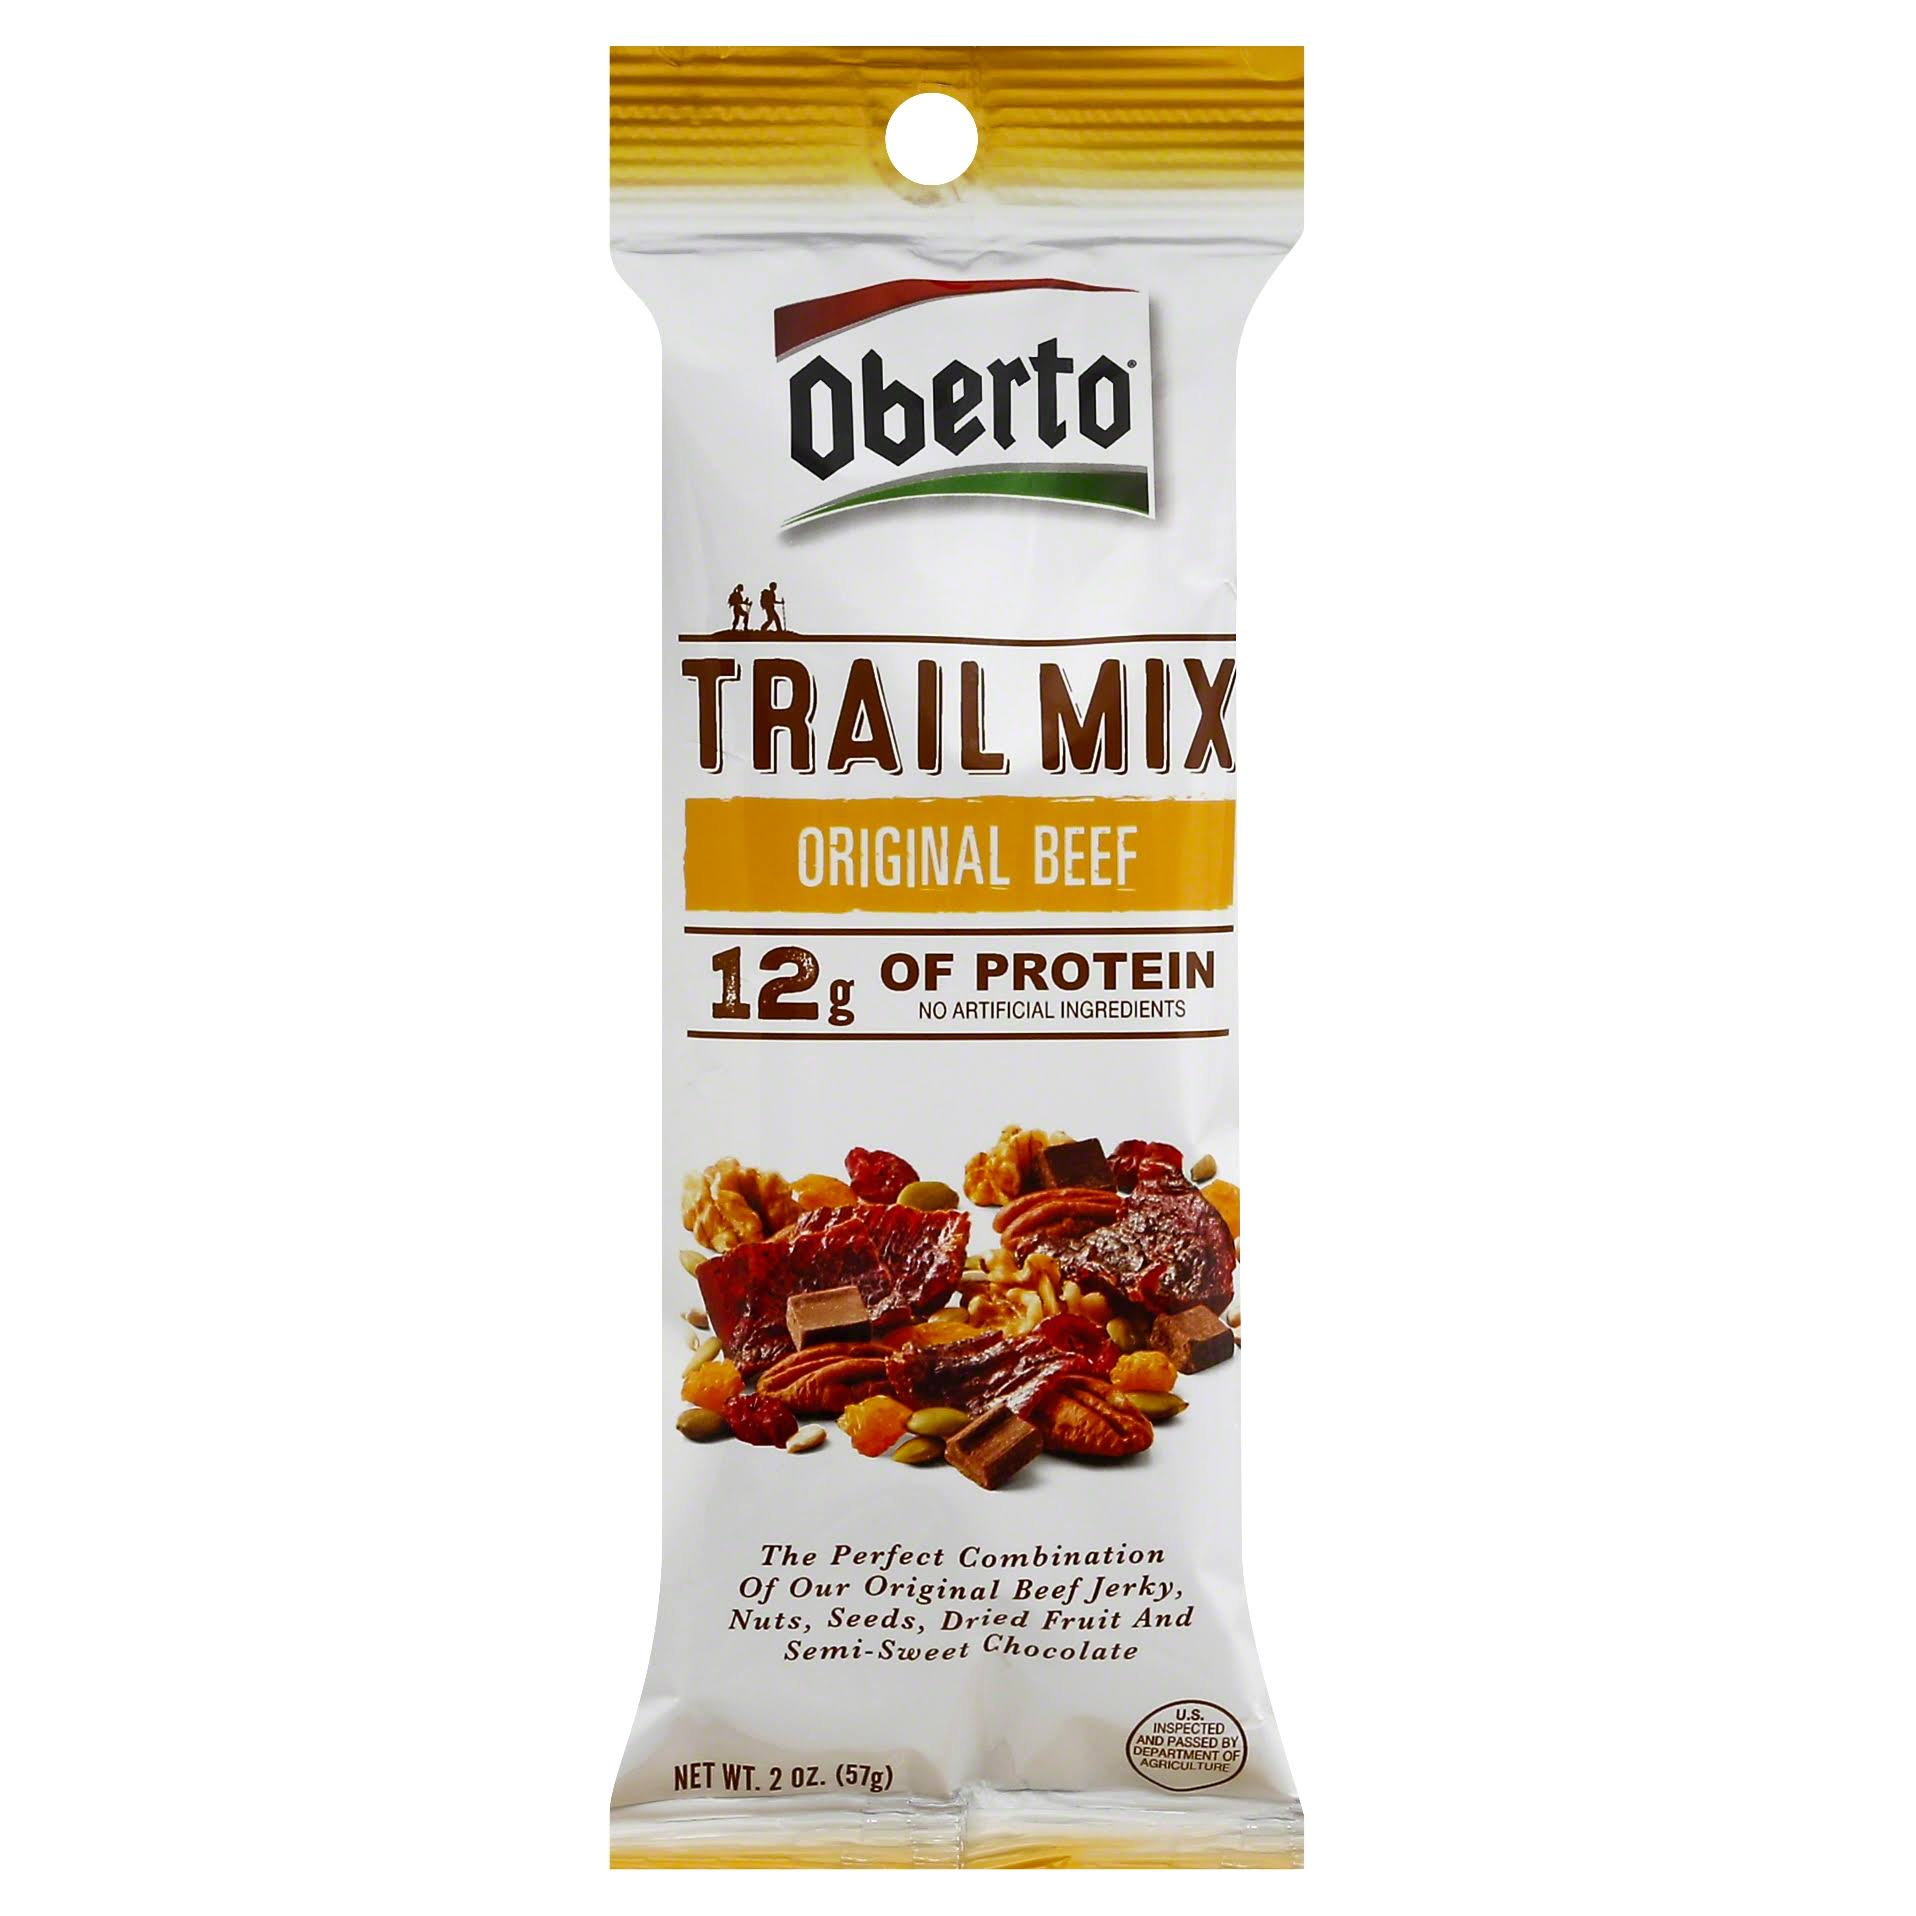 Oberto Trail Mix, Original Beef - 2 oz